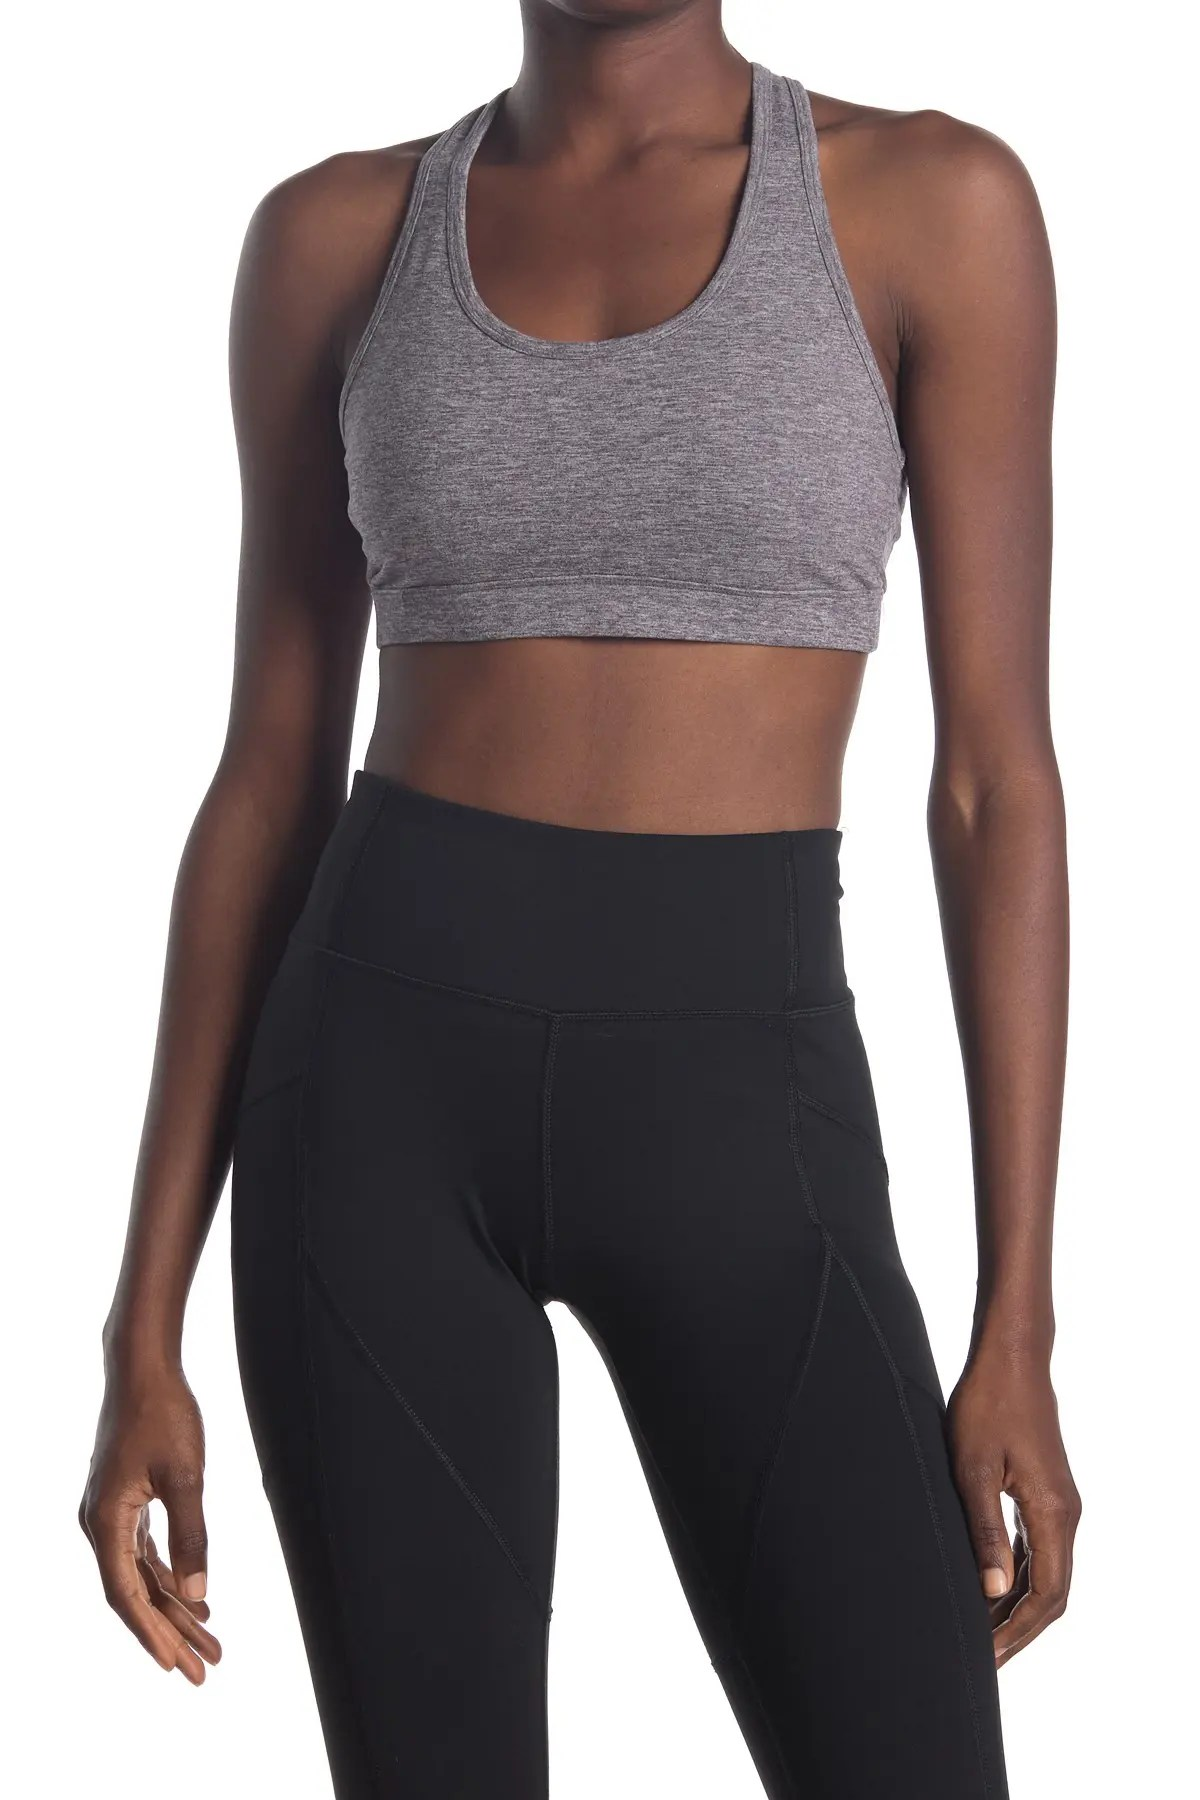 activewear for women clearance